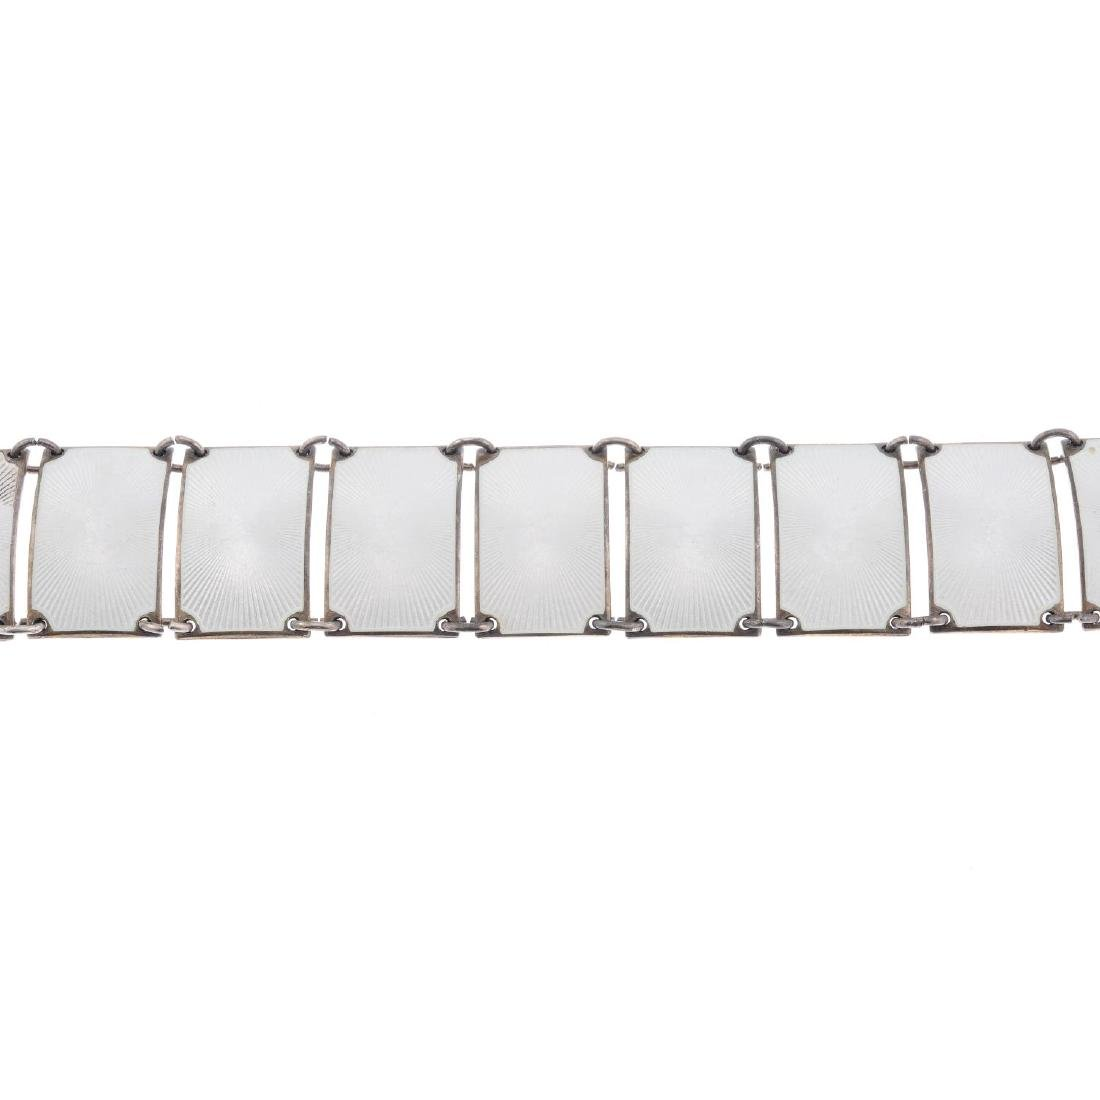 DAVID ANDERSEN - an enamel bracelet. Designed as twelve